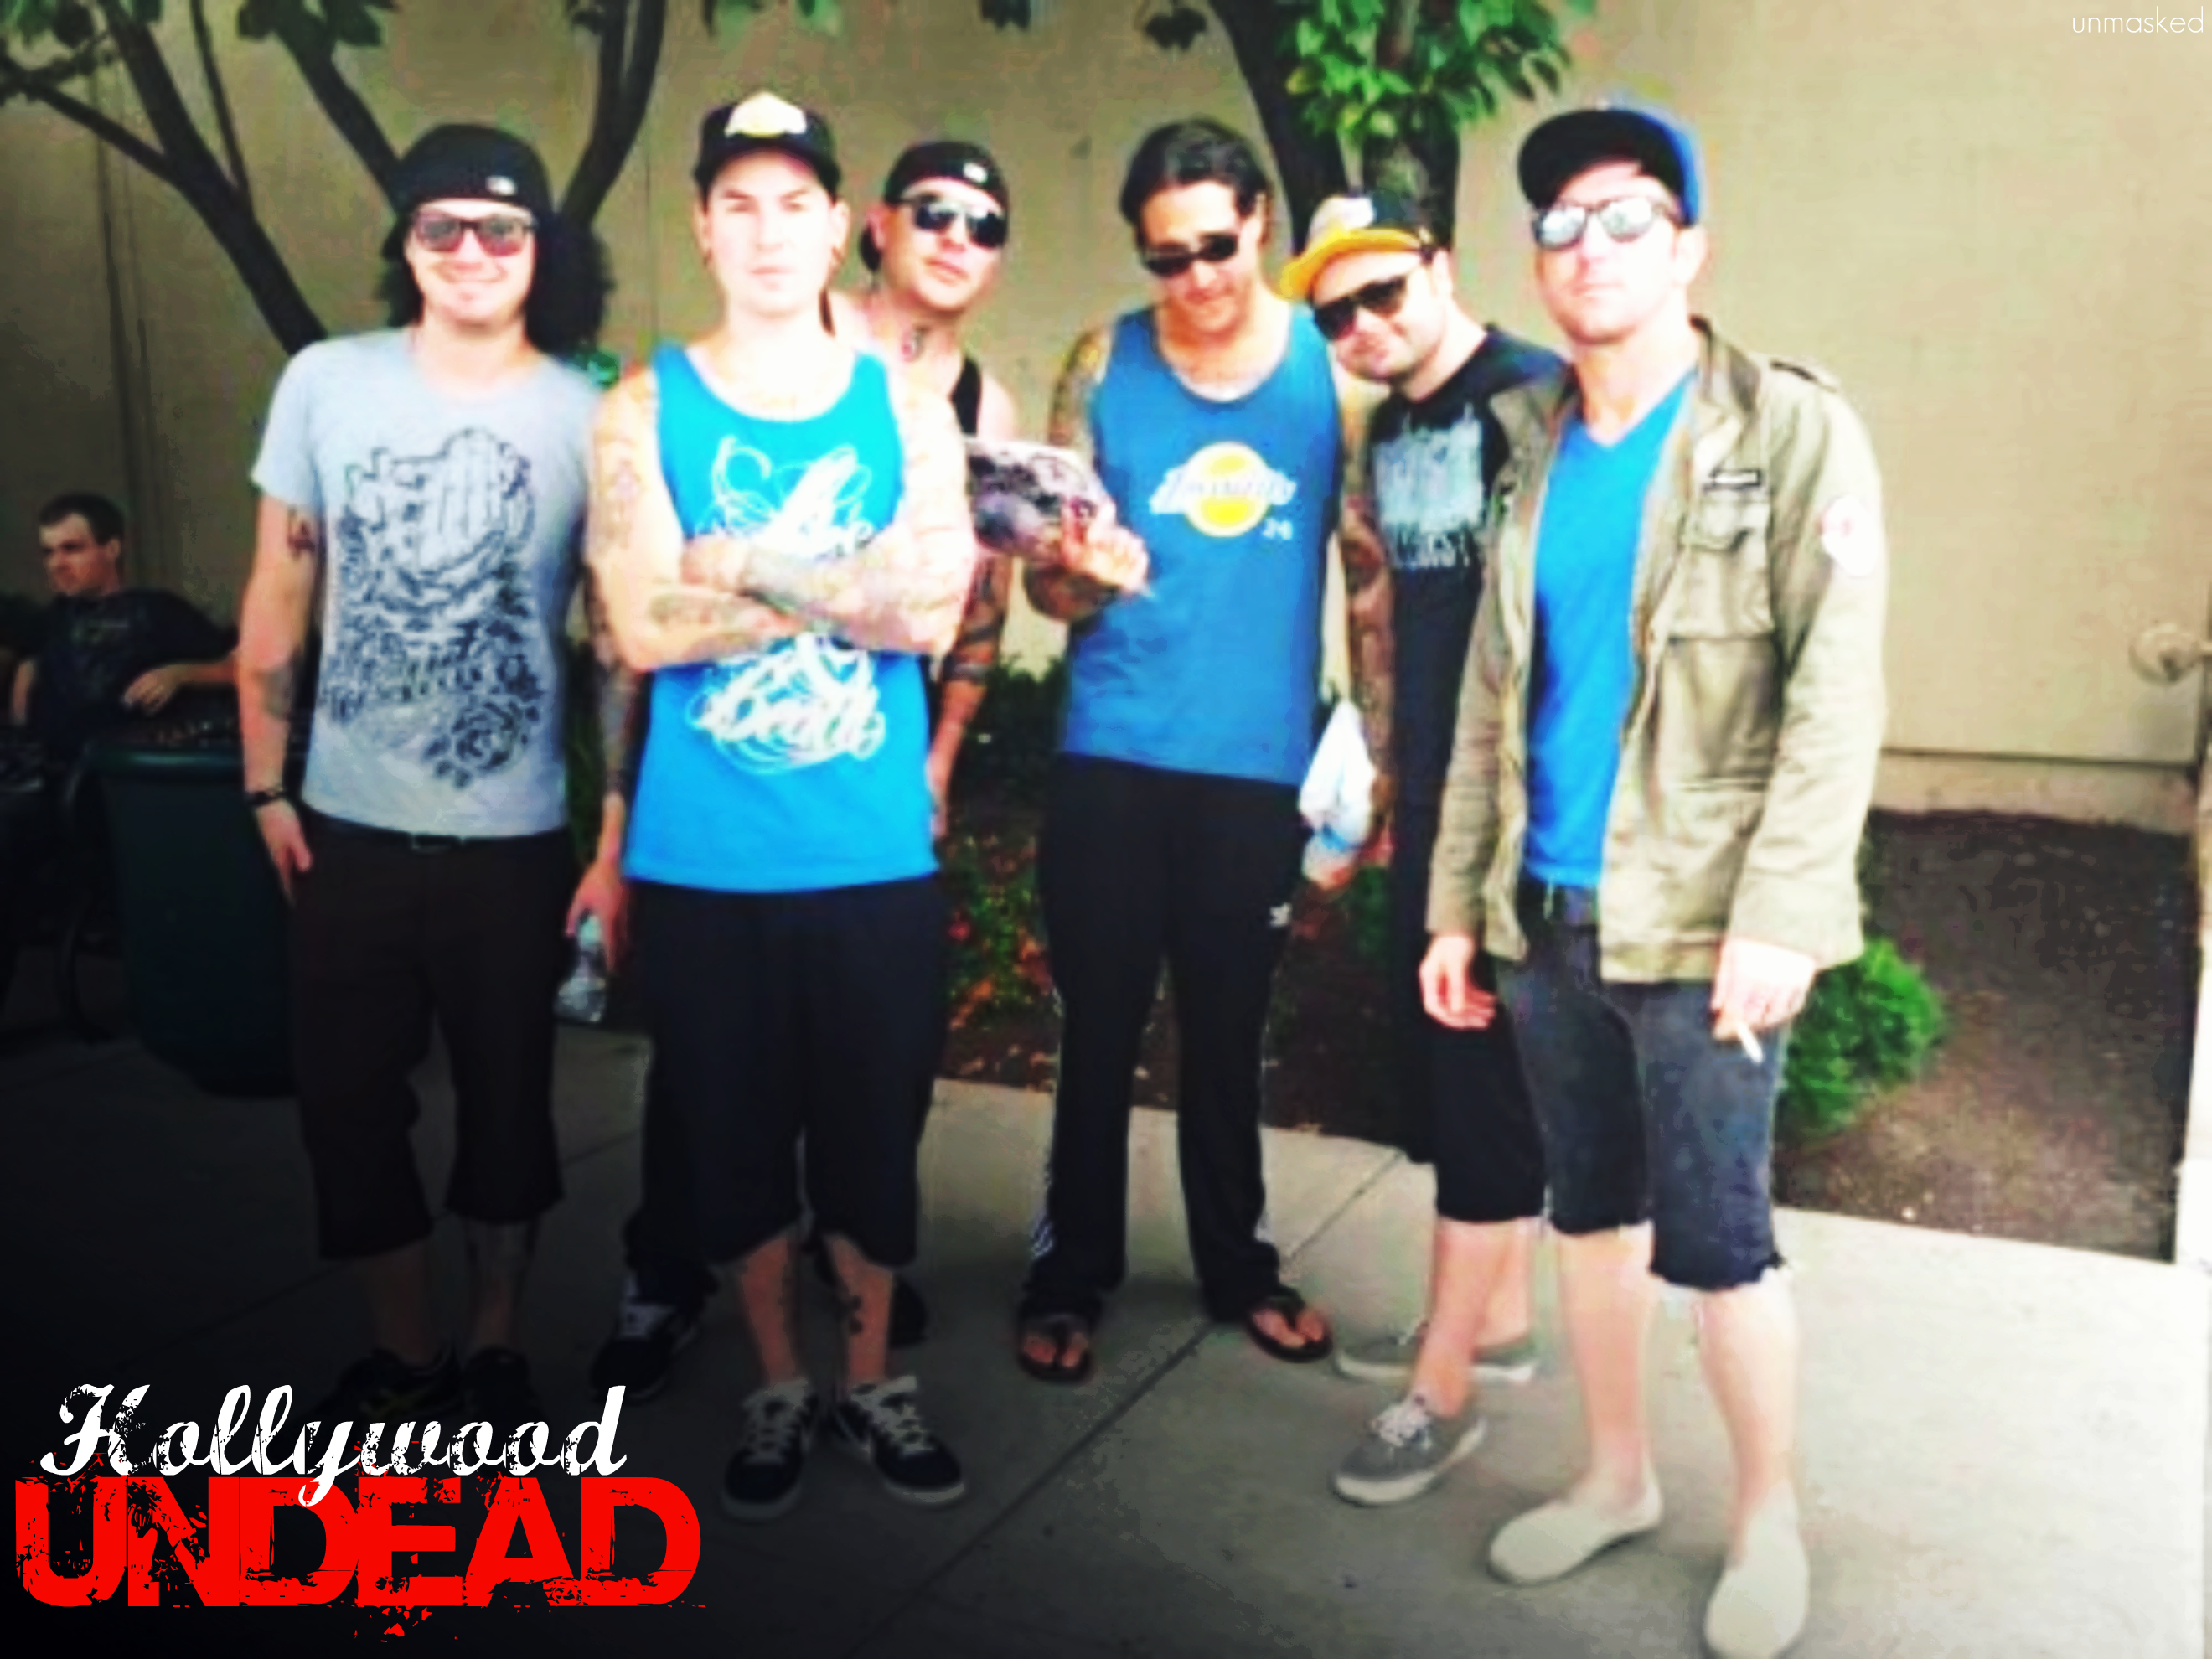 hollywood undead members american go association